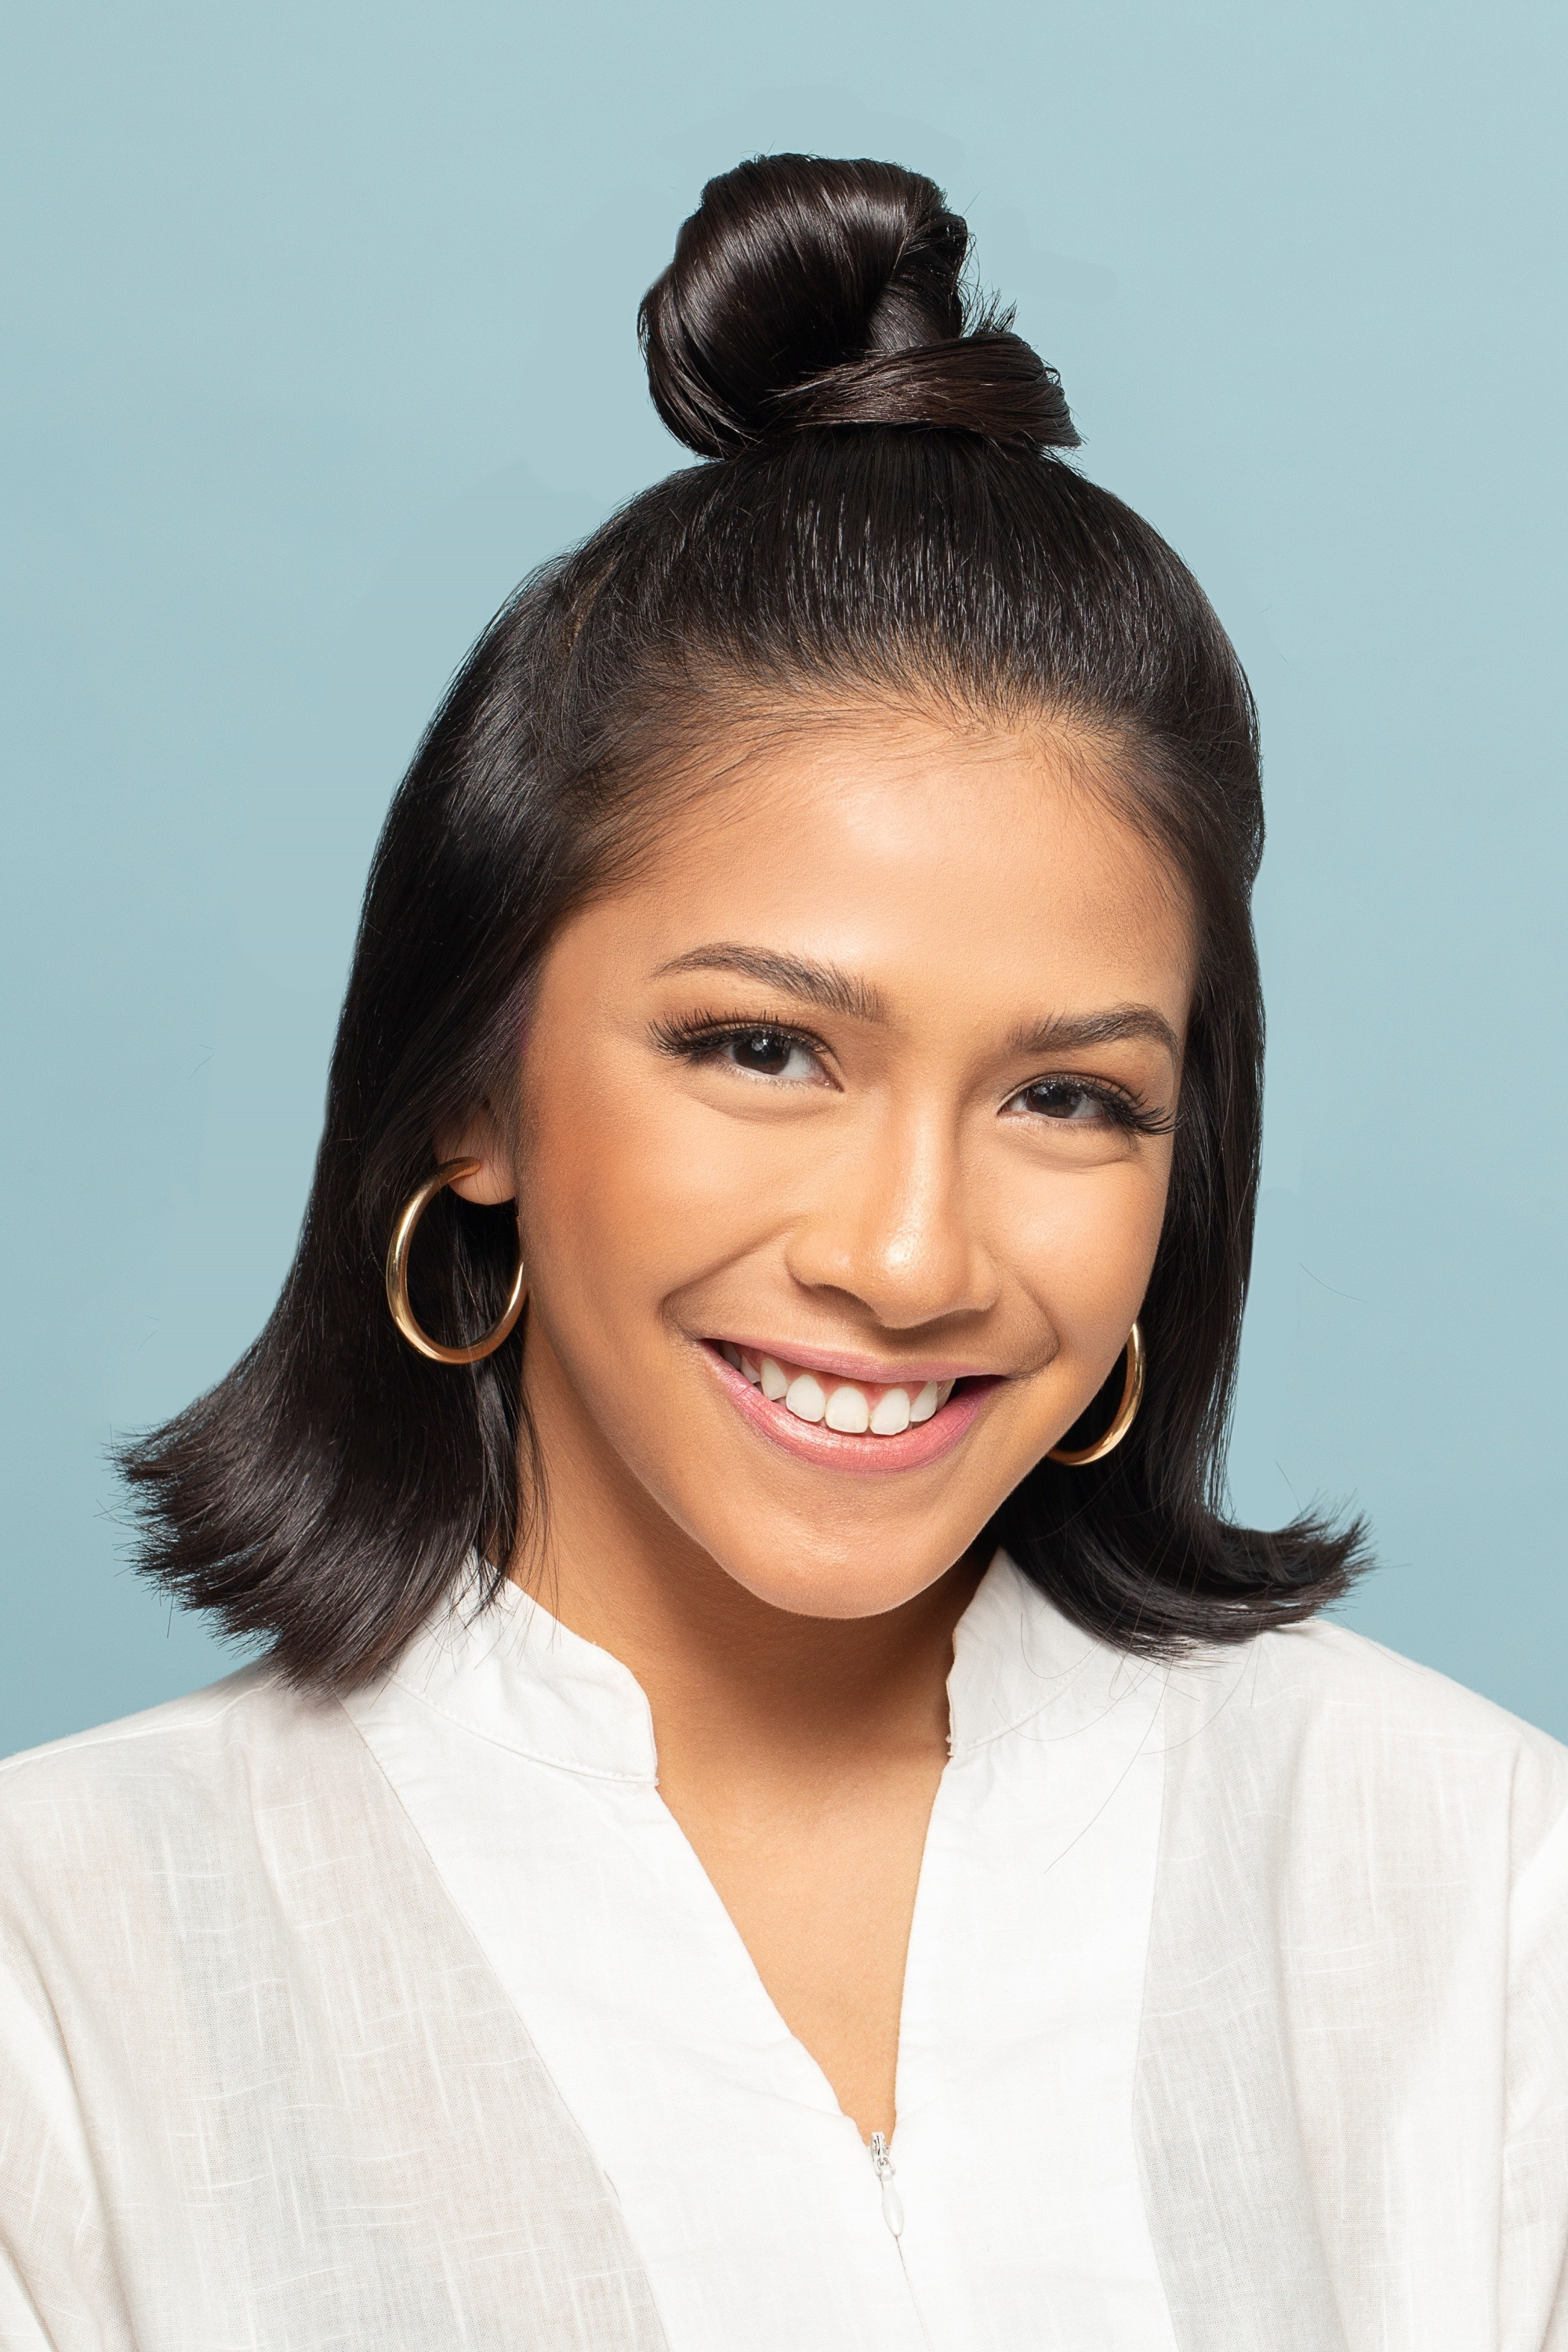 Half ponytail: Asian woman with medium length black hair in half up top knot